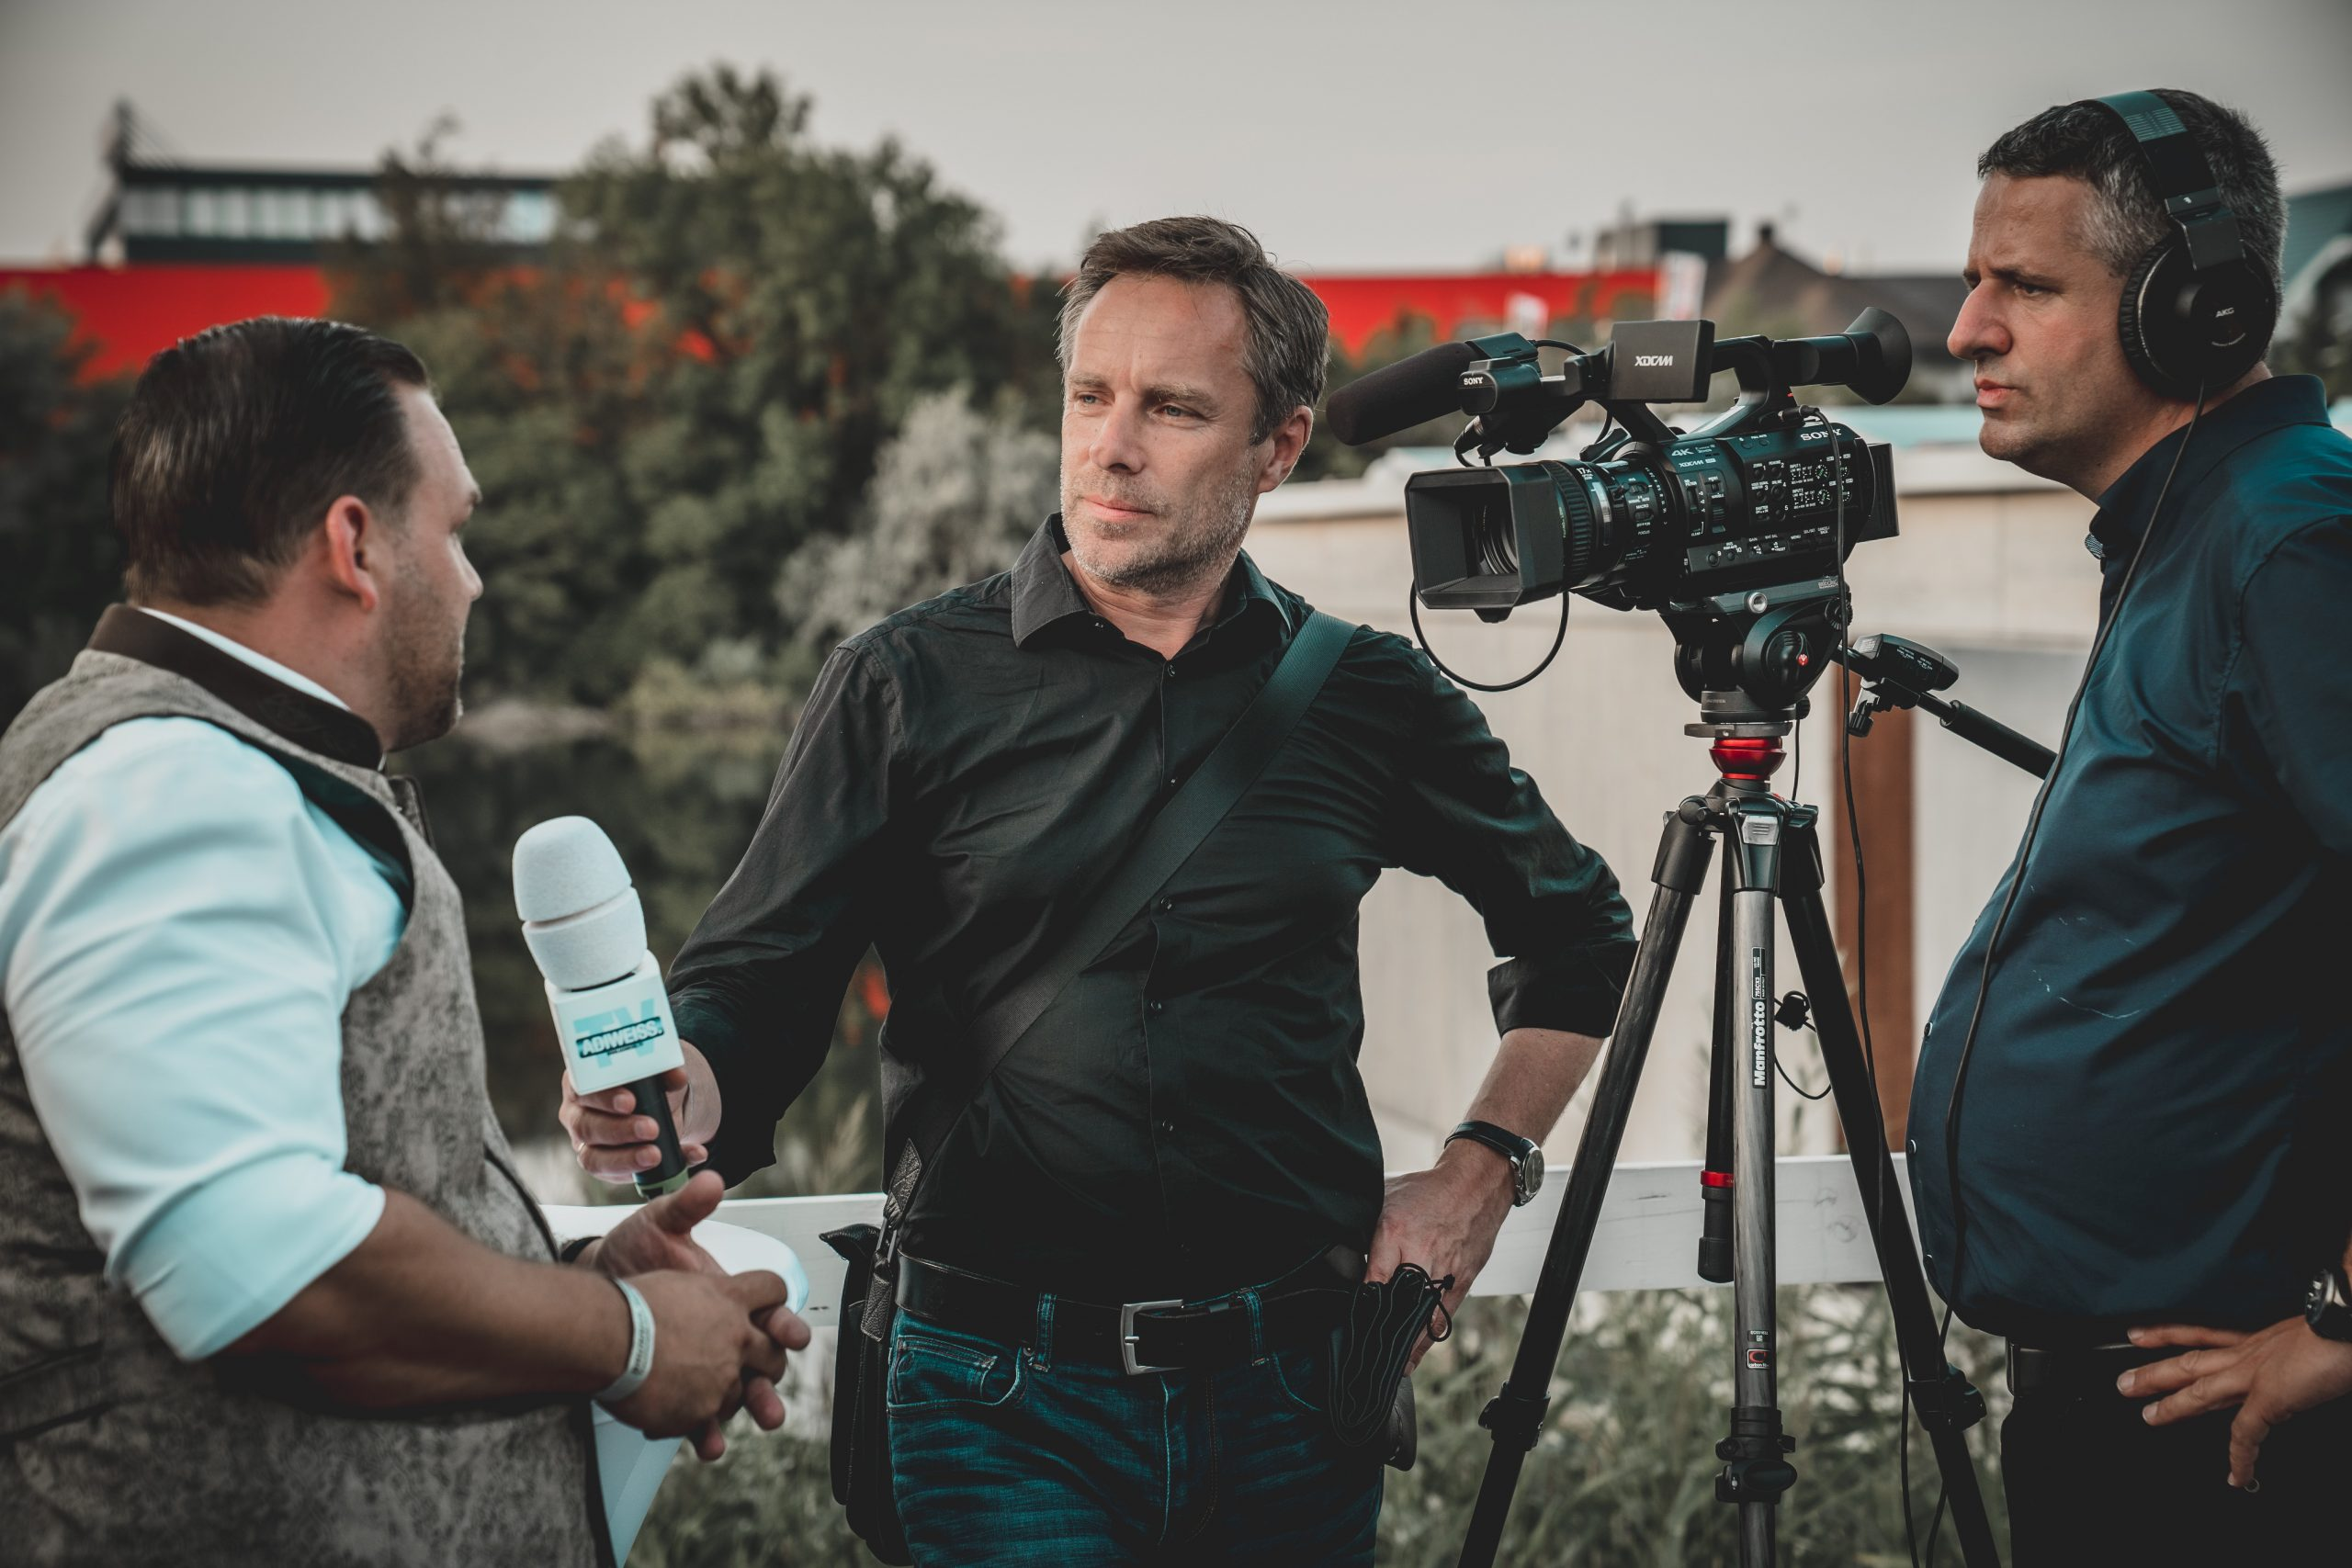 Recording Interview - how to get media coverage